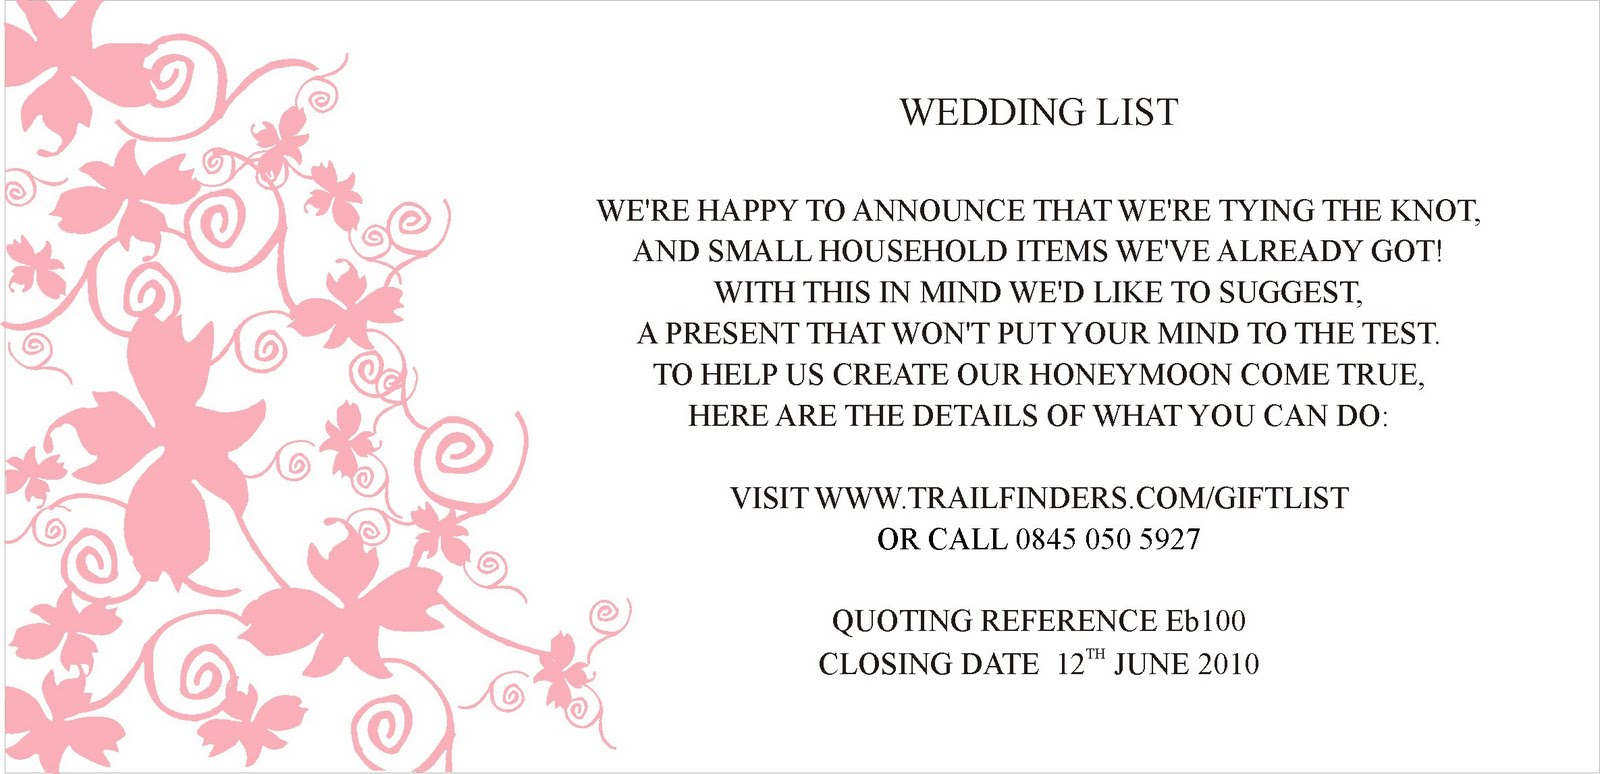 Wedding Gift List Travel Agents : wedding gift card serves a practical purpose, saving you from ten ...